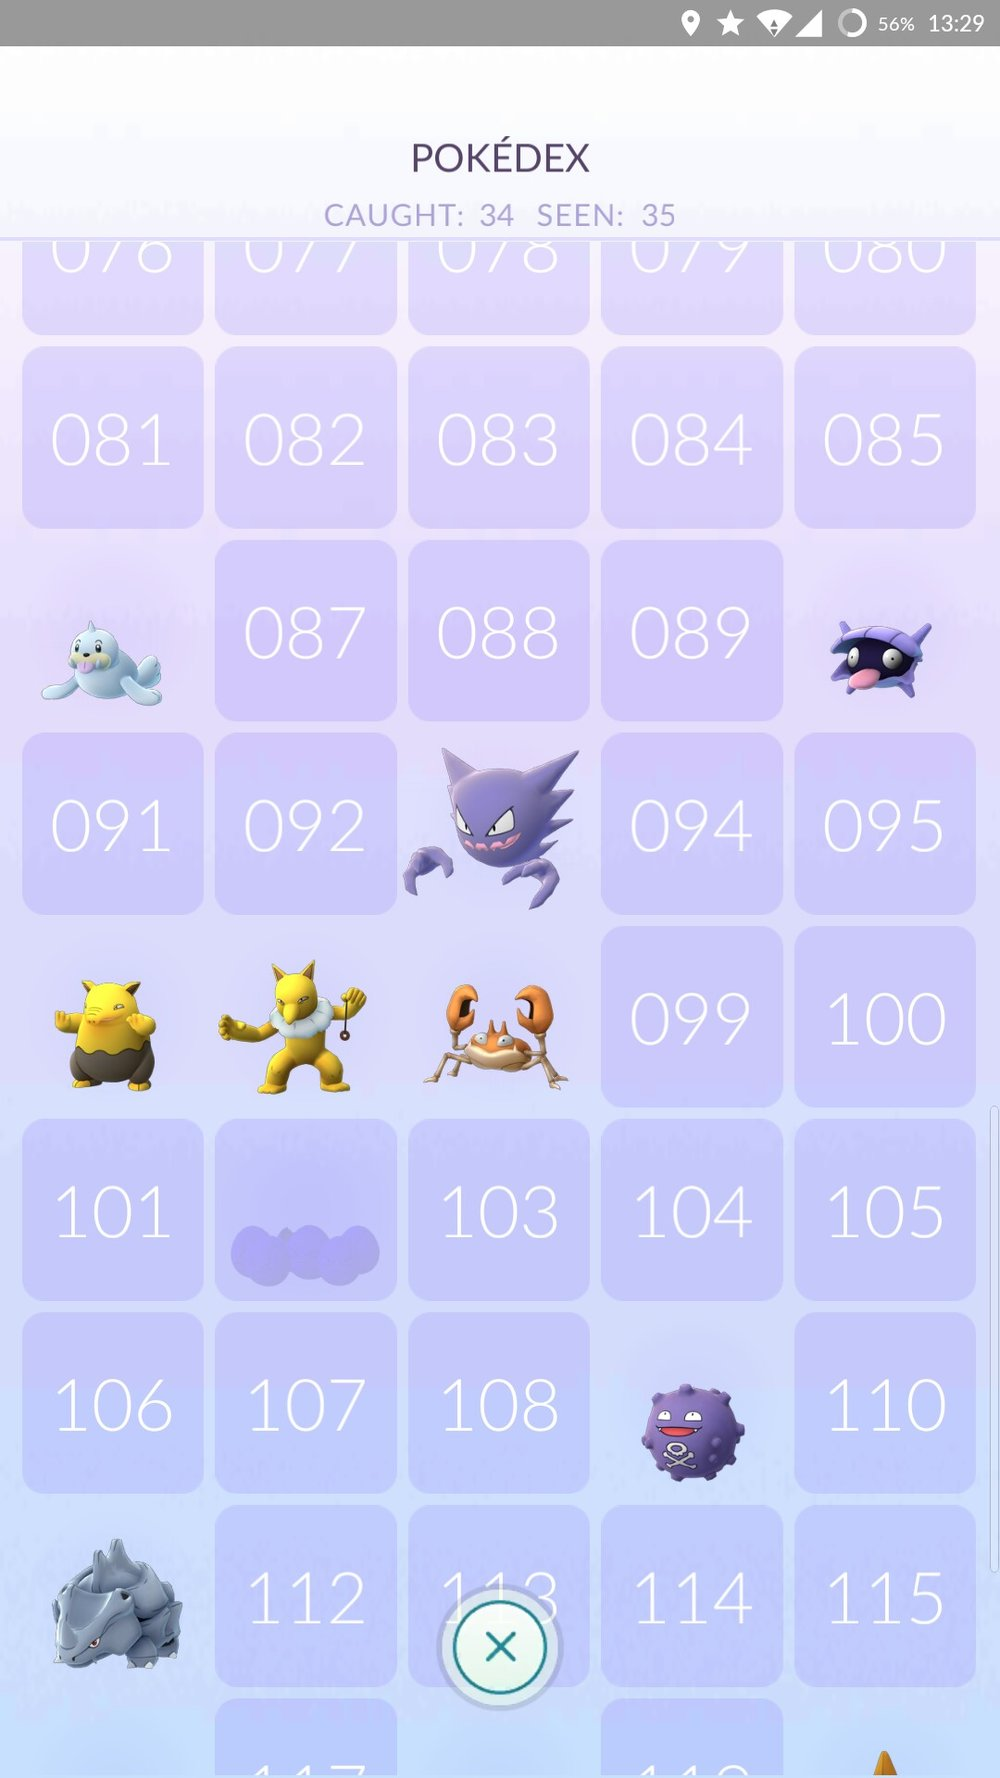 pokemon go pokedex.jpg